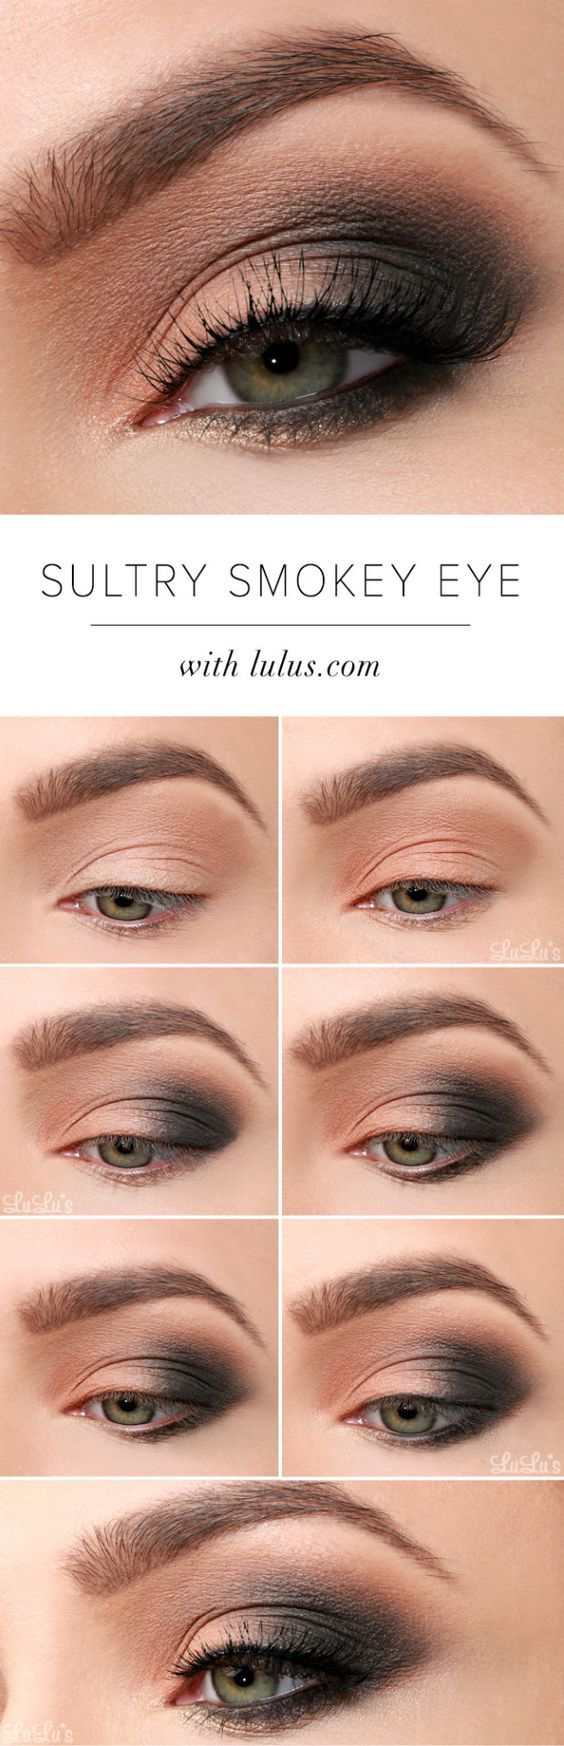 Lulus How To Sultry Smokey Eye Makeup Tutorial Makeup